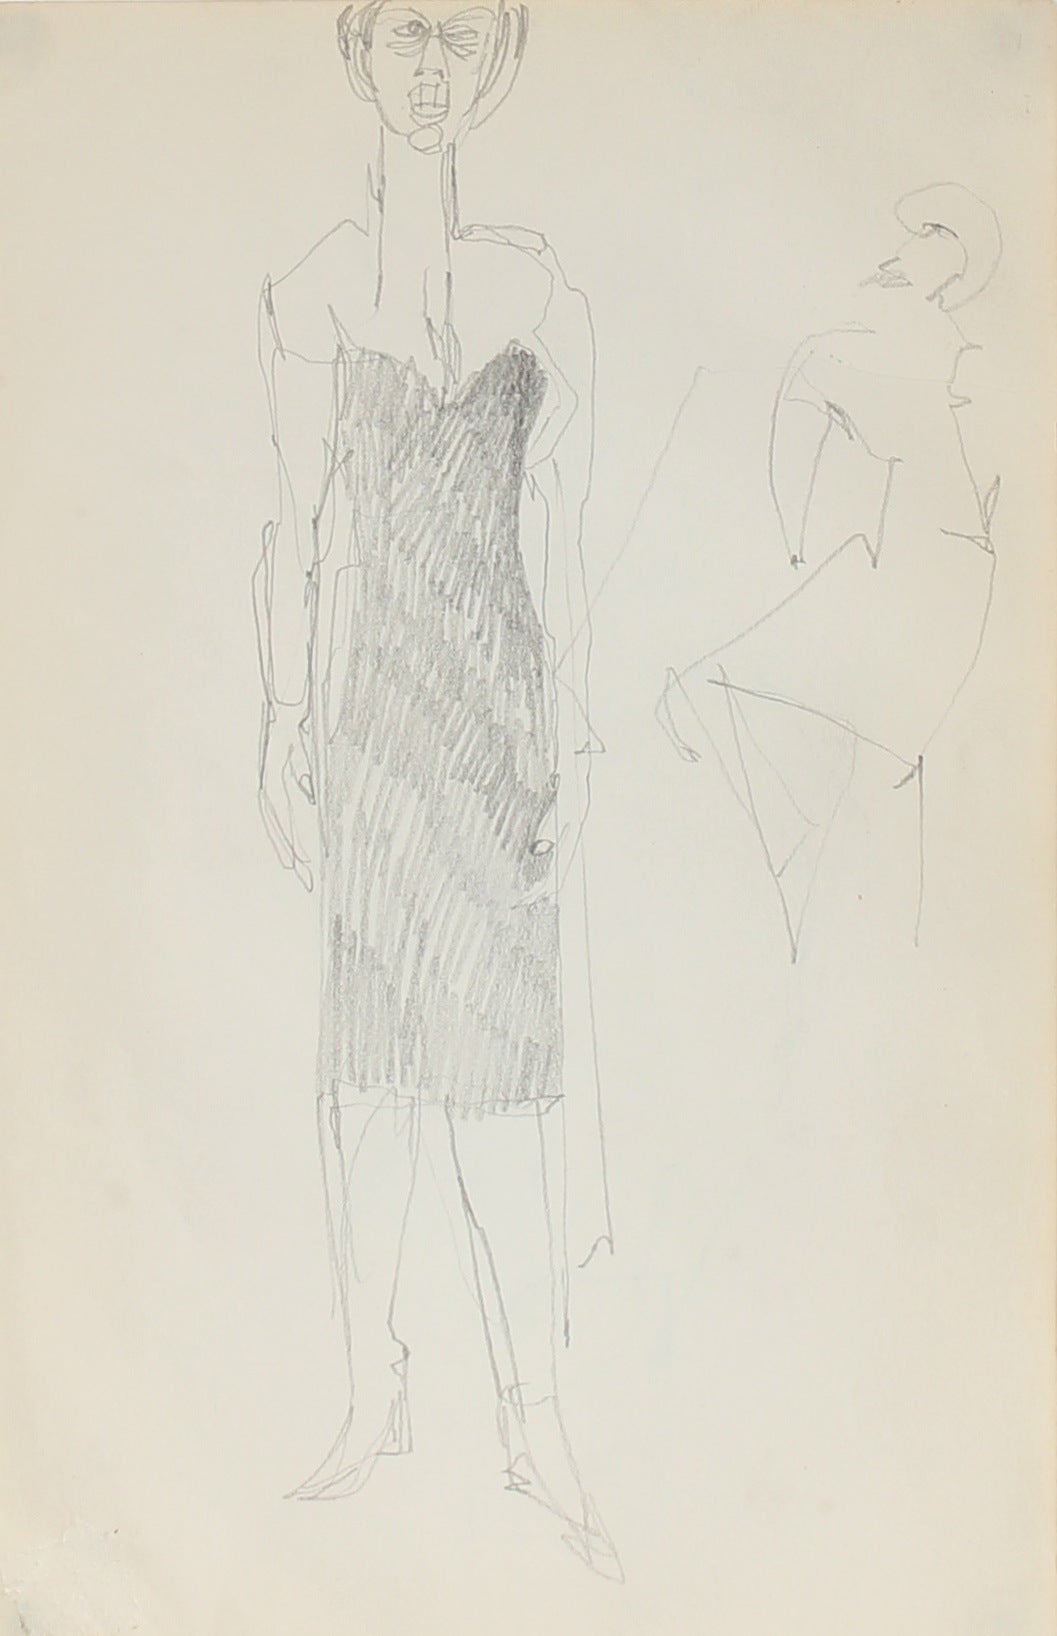 Woman in Black, New York<br><br>Graphite, 1950-60s<br><br>#0311